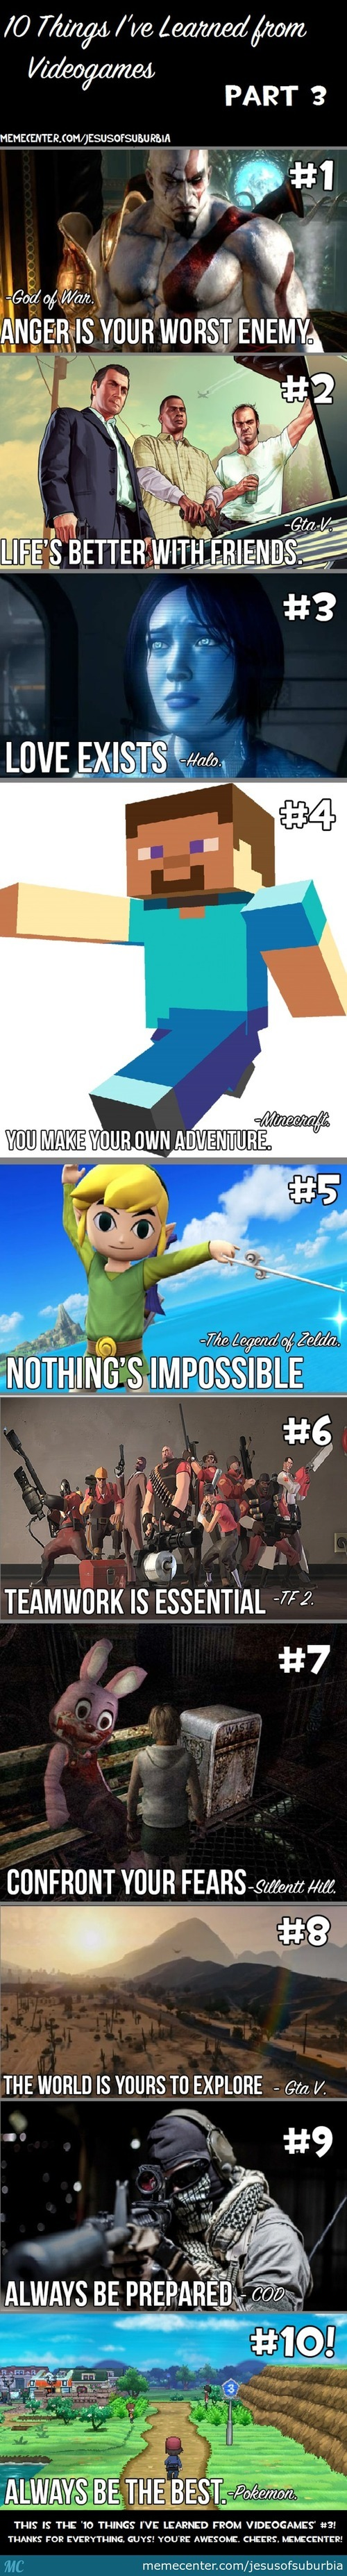 10 Things I've Learned From Videogames #3